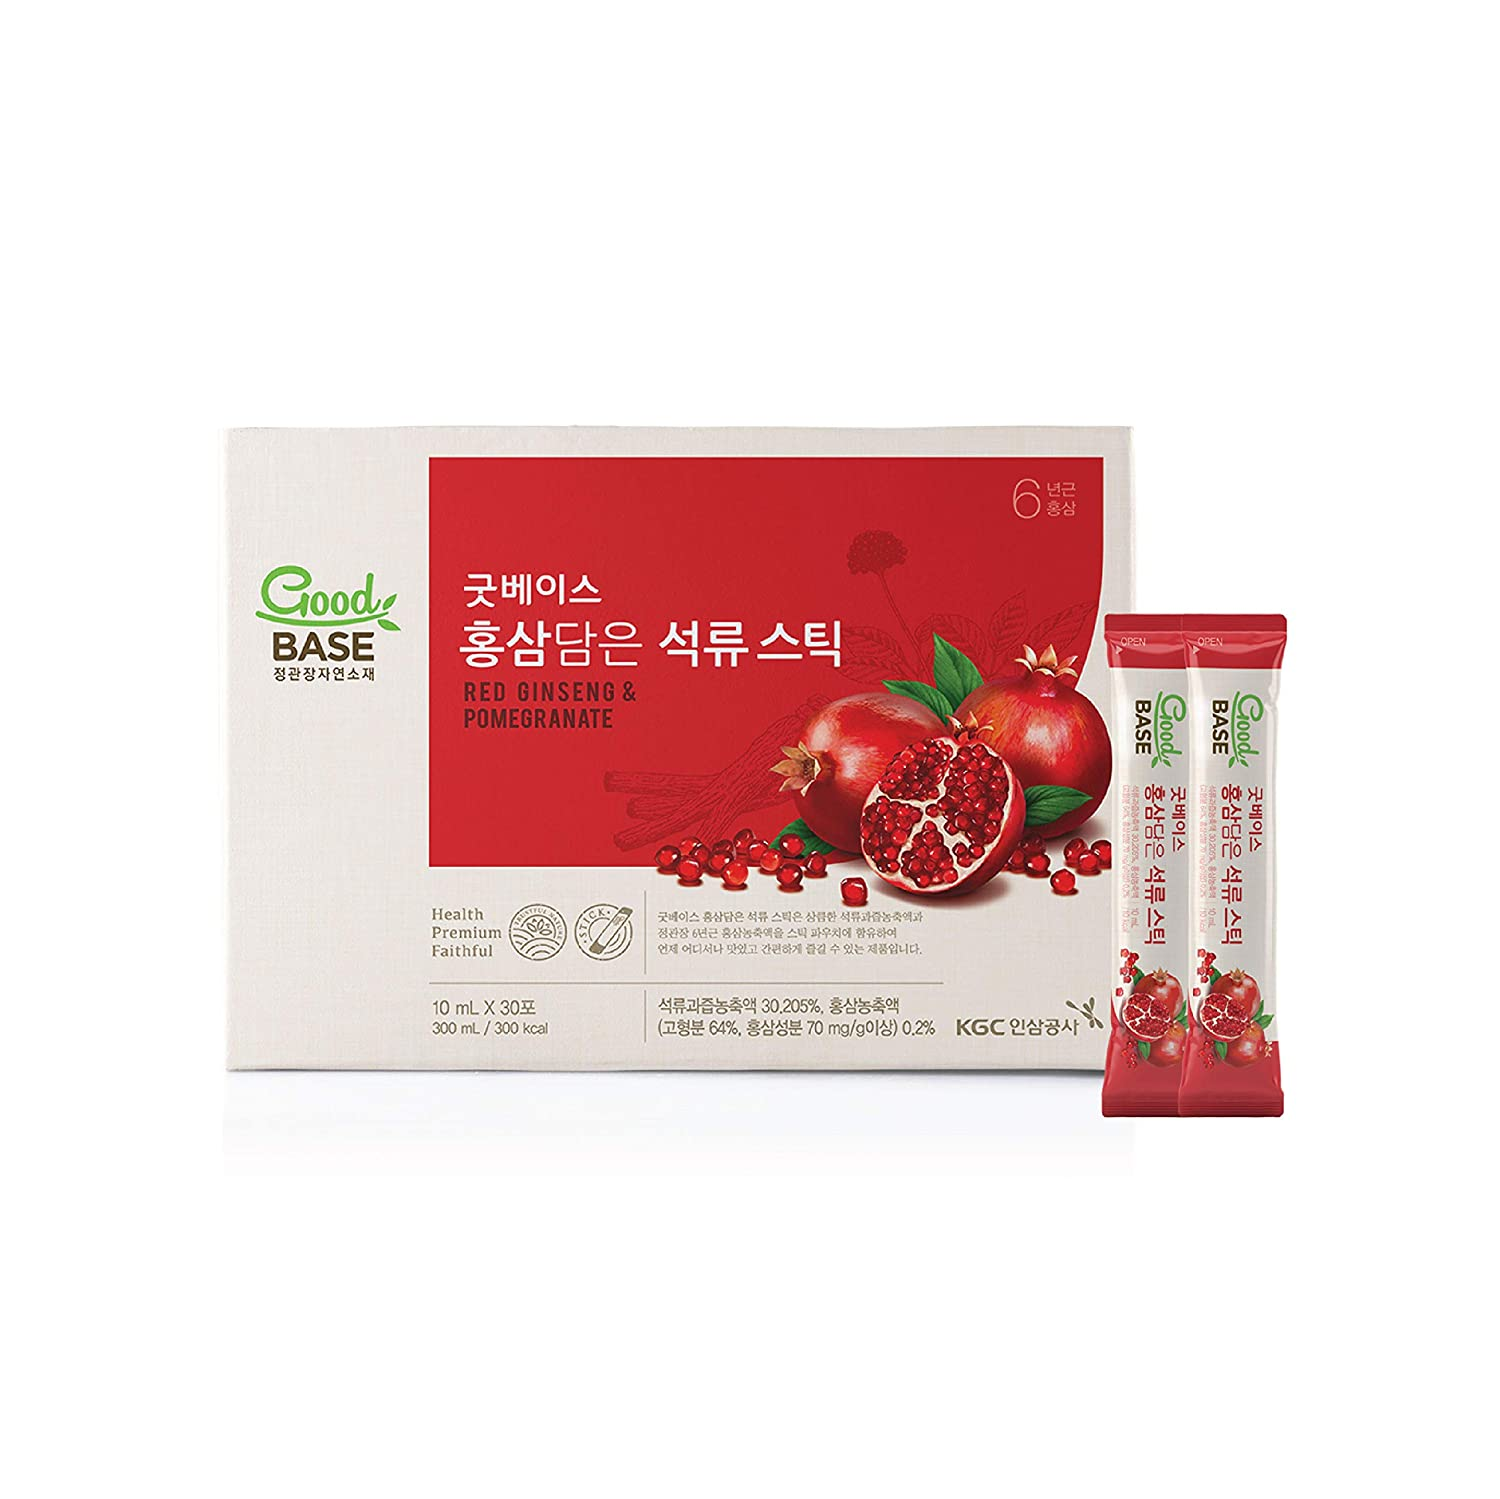 Good Base Fruity Superfood Sticks (Pomegranate)   Delicious Wellness Beverage with 6 Years Grown Korean Red Panax Ginseng Root Extract   Light and Compact Liquid Sticks   Vegan, Non-GMO, Gluten-Free, No Artificial Coloring or Preservatives - 30 count(0.34 fl oz)